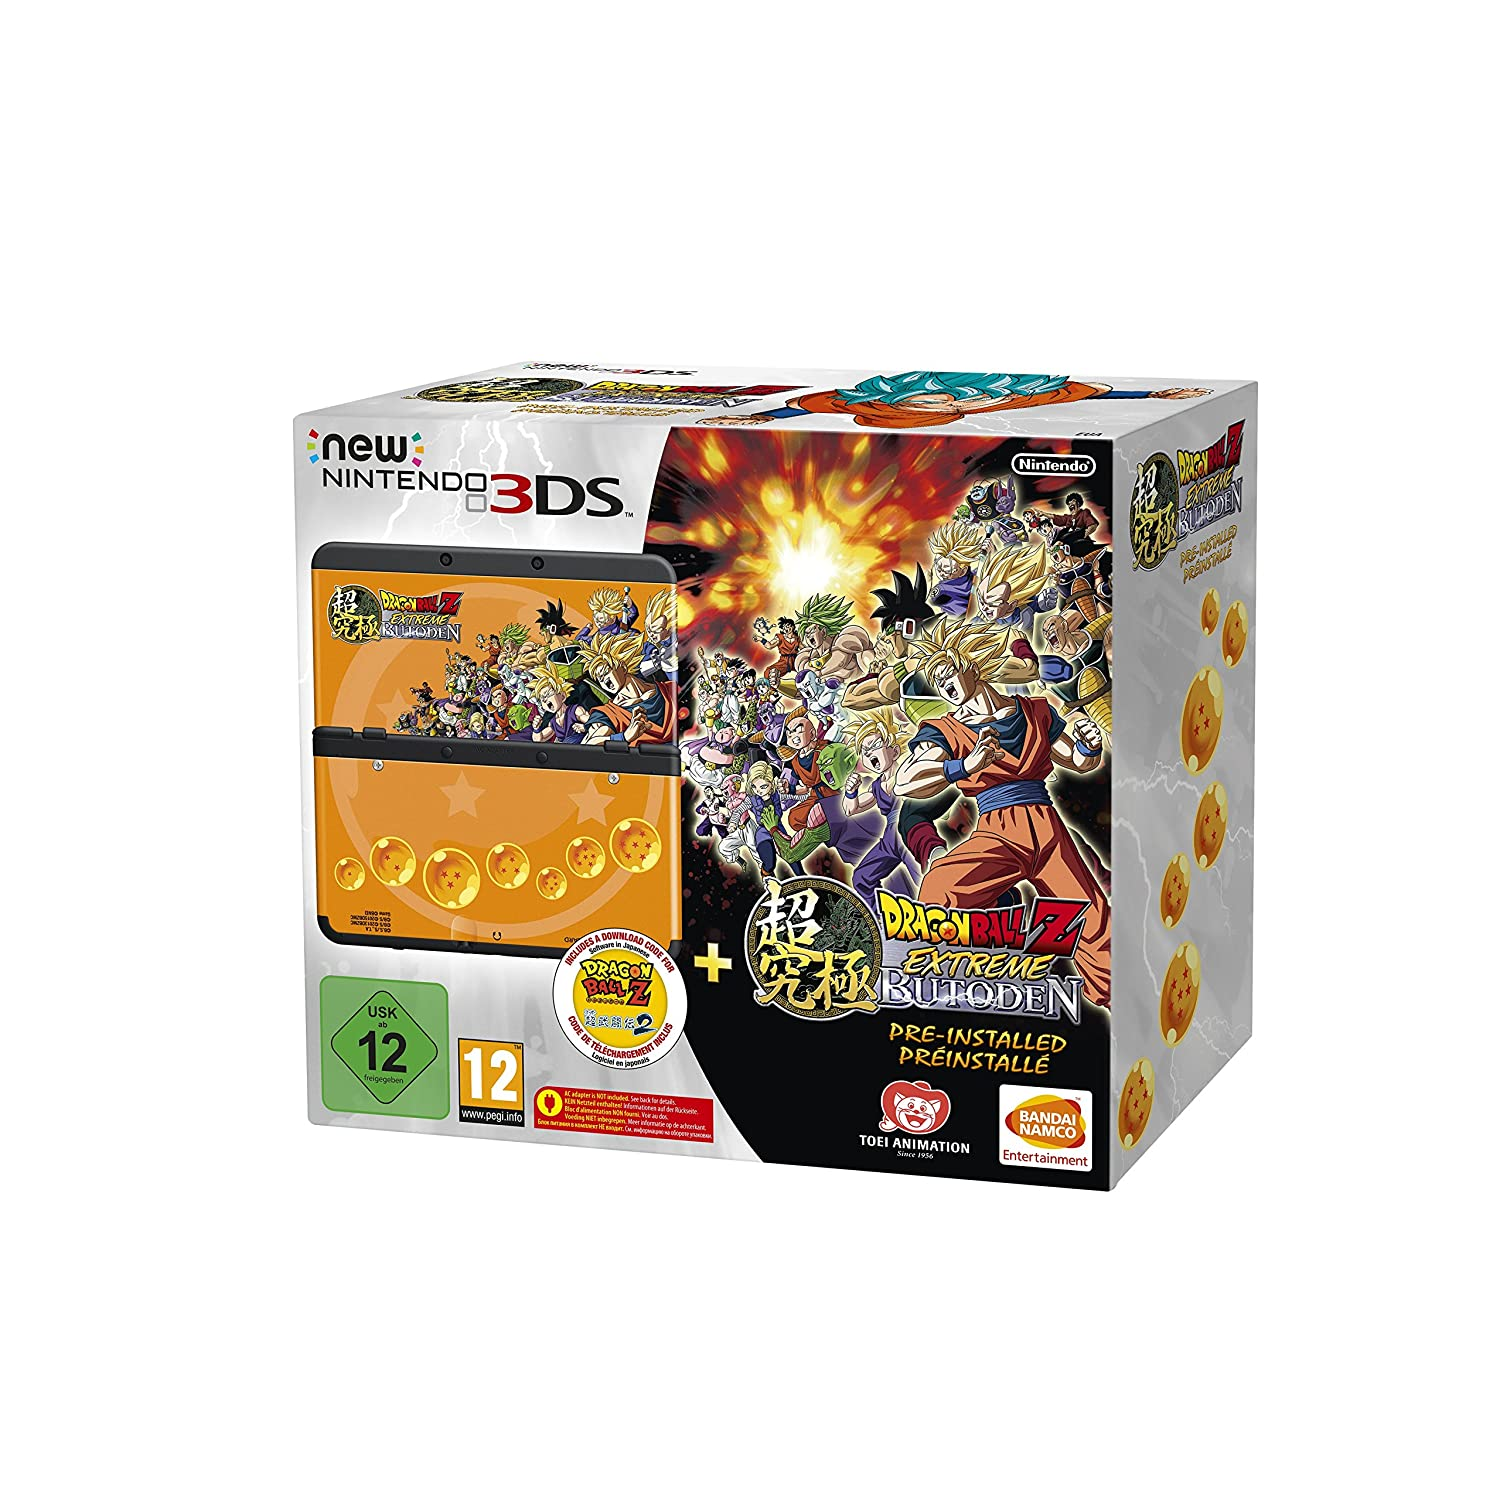 Nintendo 3DS Dragon Ball Z amazon